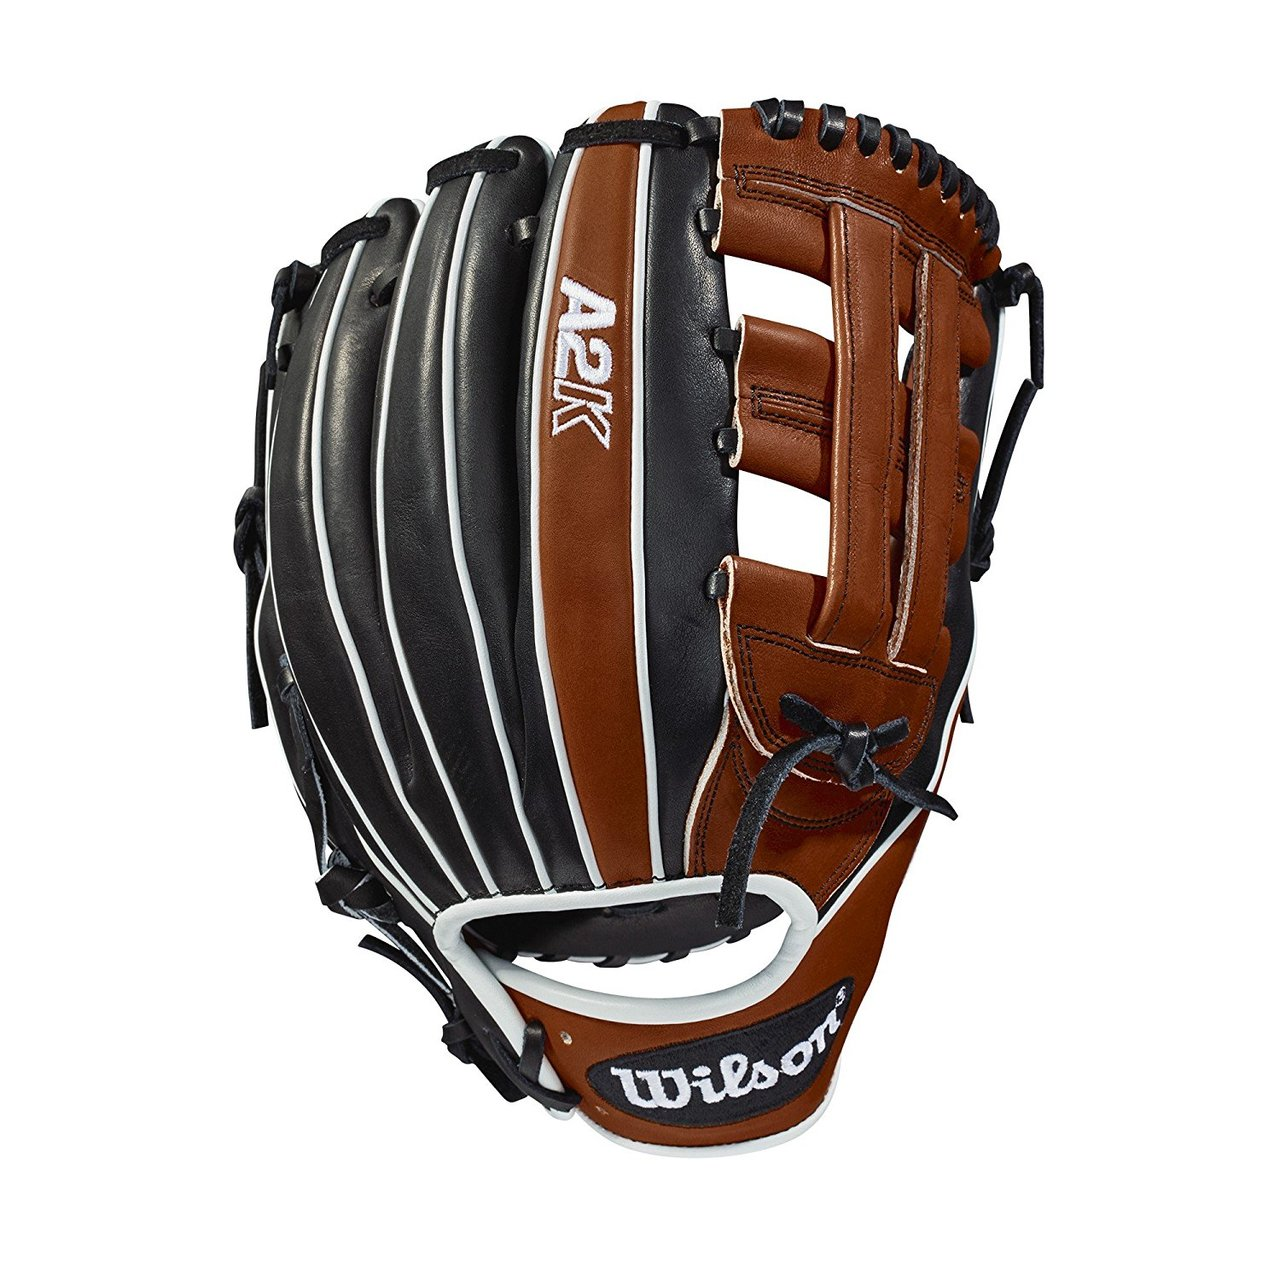 wilson-2018-a2k-1721-infield-baseball-glove-right-hand-throw-12-inch WTA2KRB181721-RightHandThrow Wilson 887768612191 The A2K® 1721 is a new infield model to the Wilson